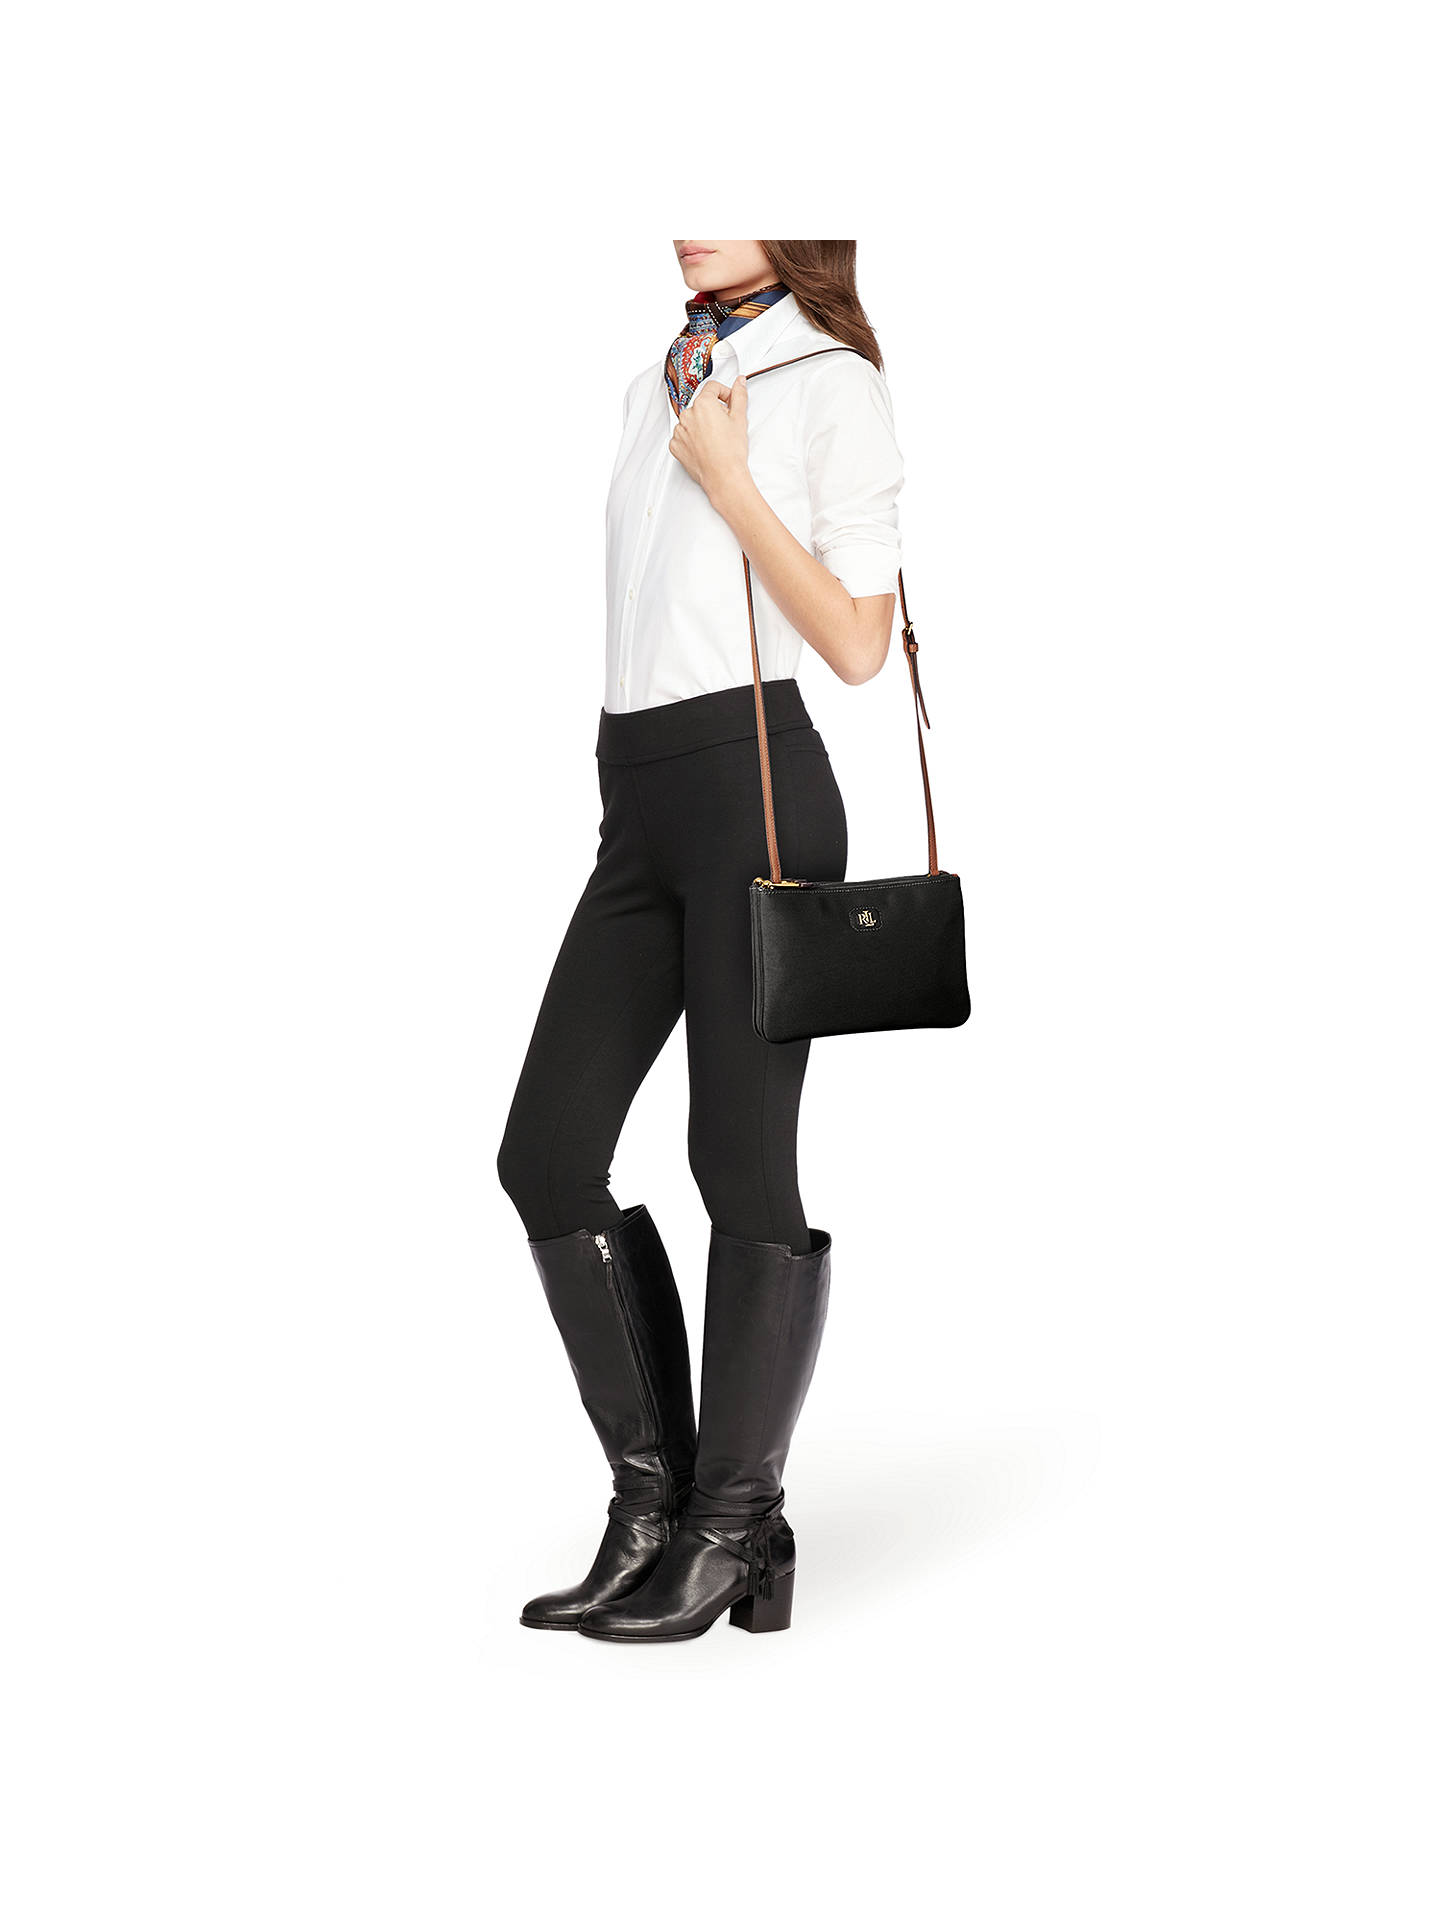 9150045ad74 ... BuyLauren Ralph Lauren Tara Cross Body Bag, Black Online at  johnlewis.com